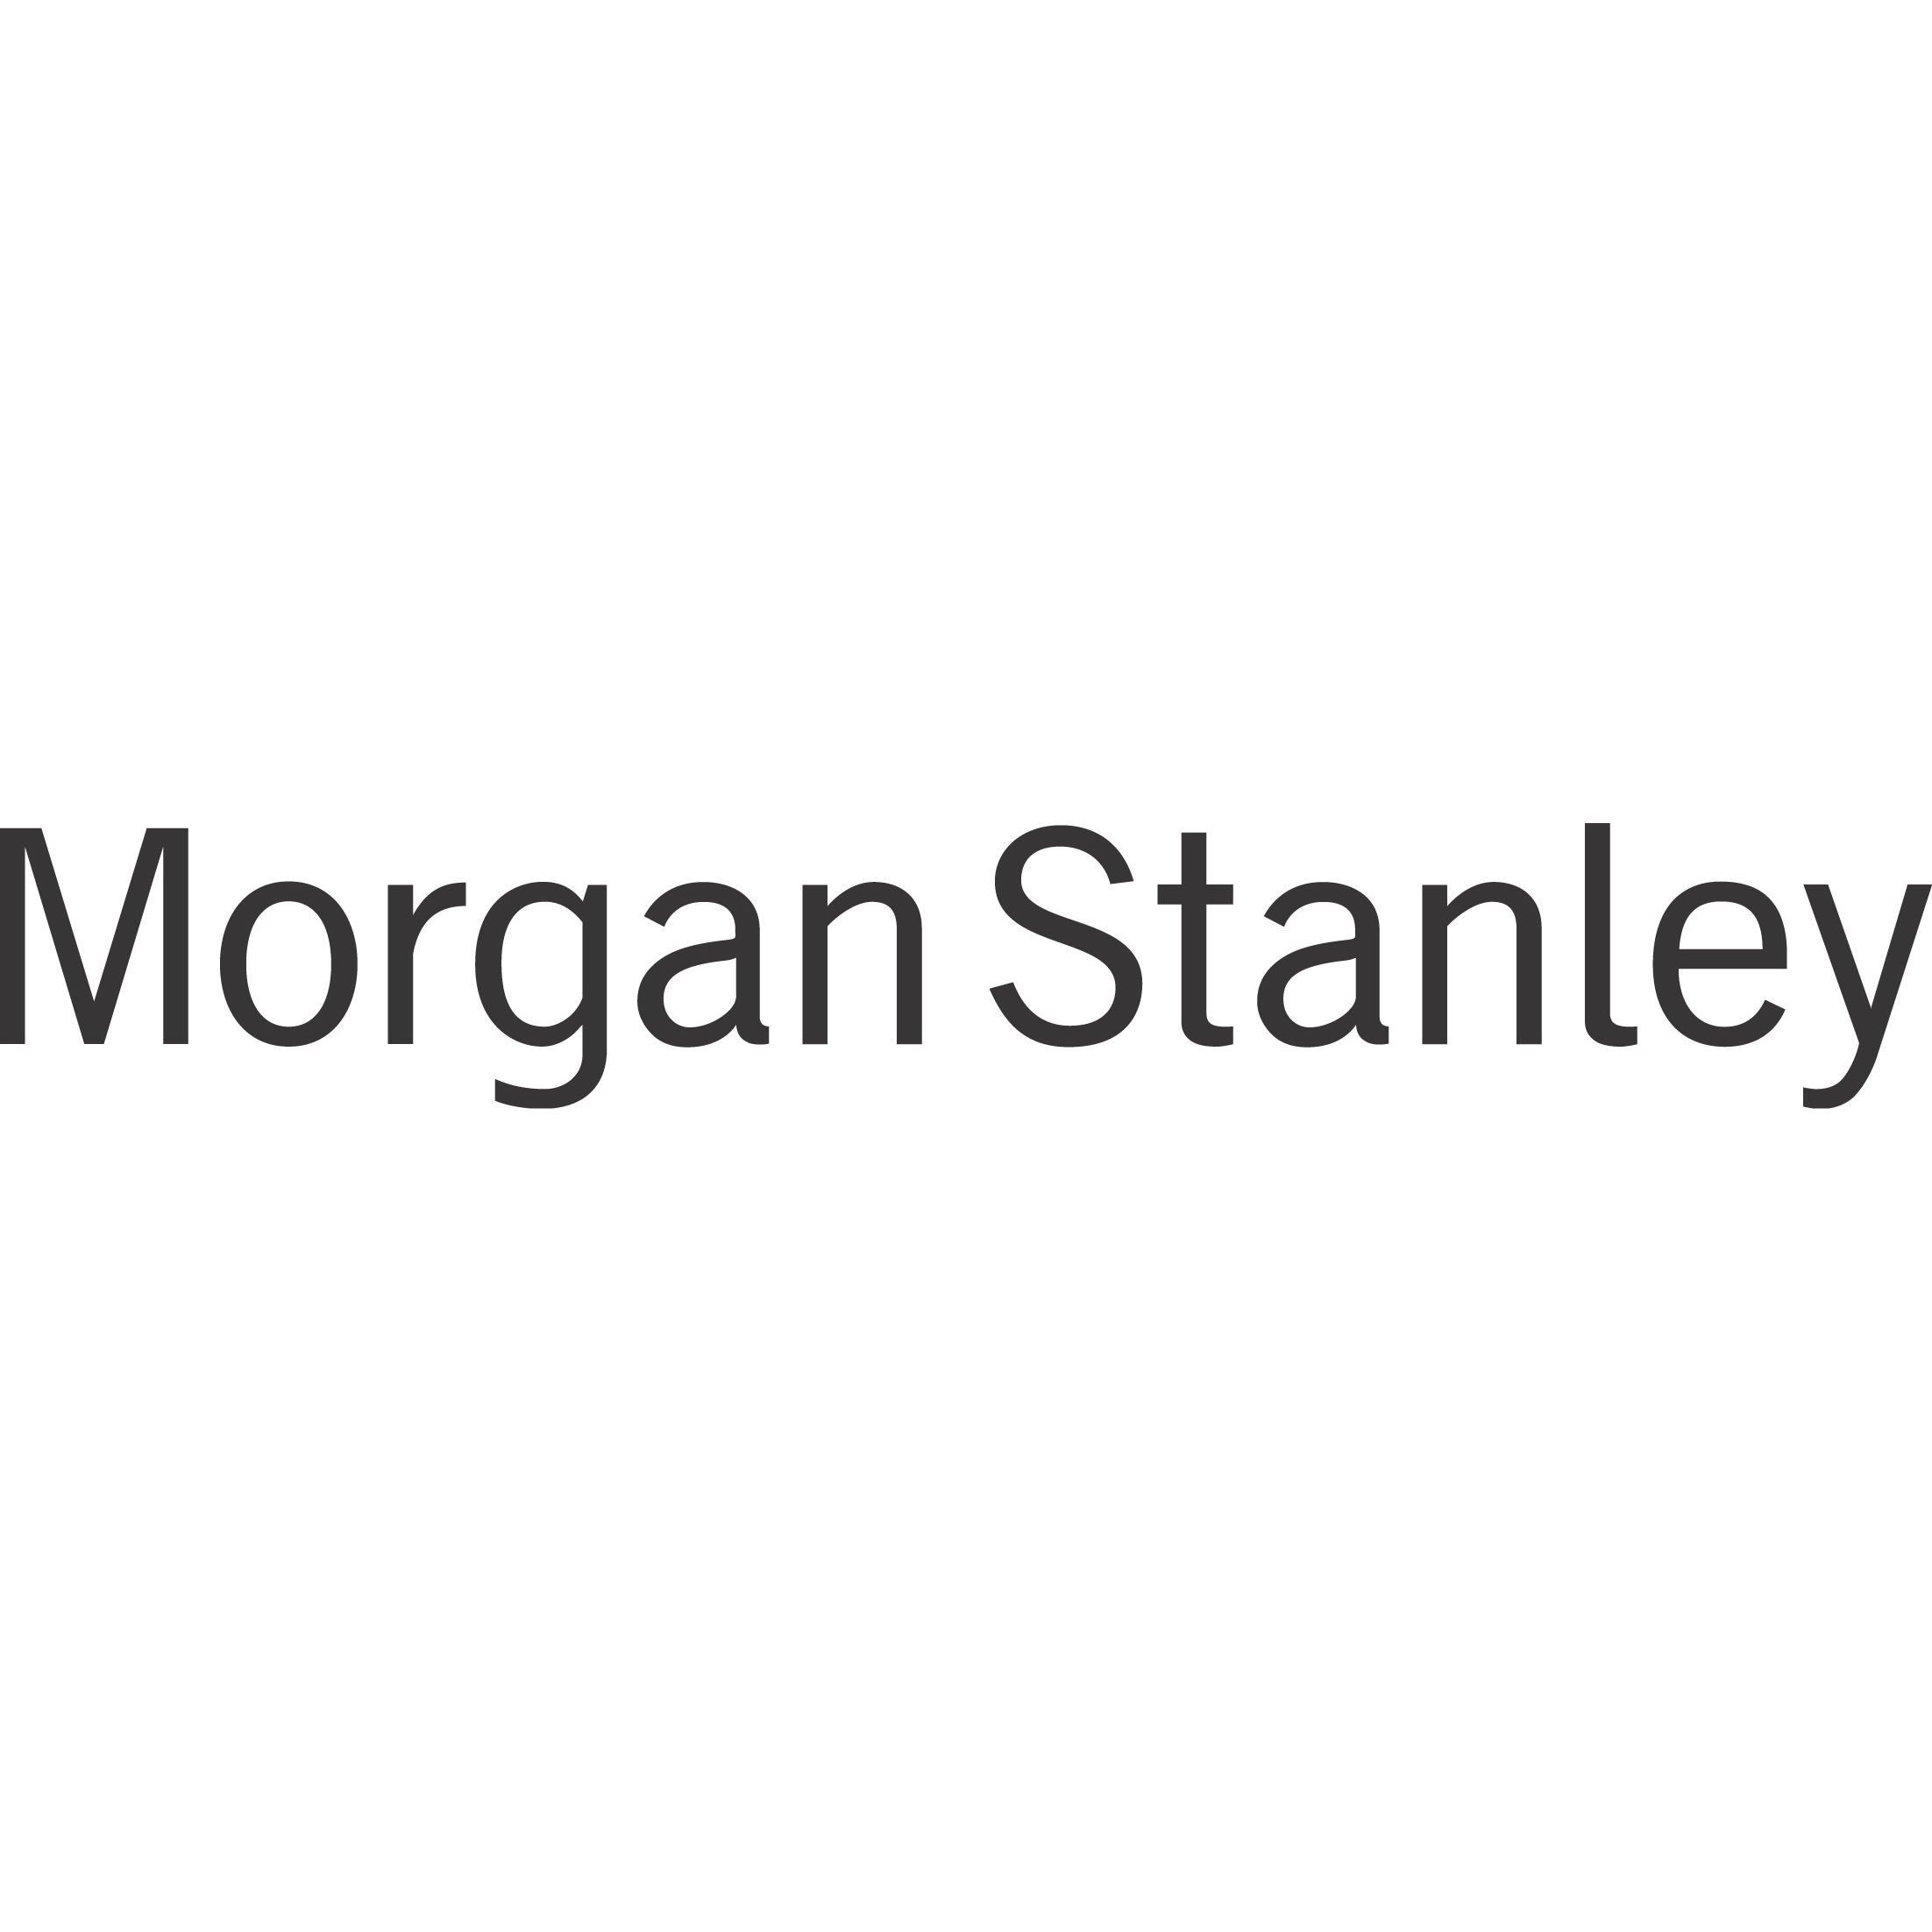 David W Cramer - Morgan Stanley